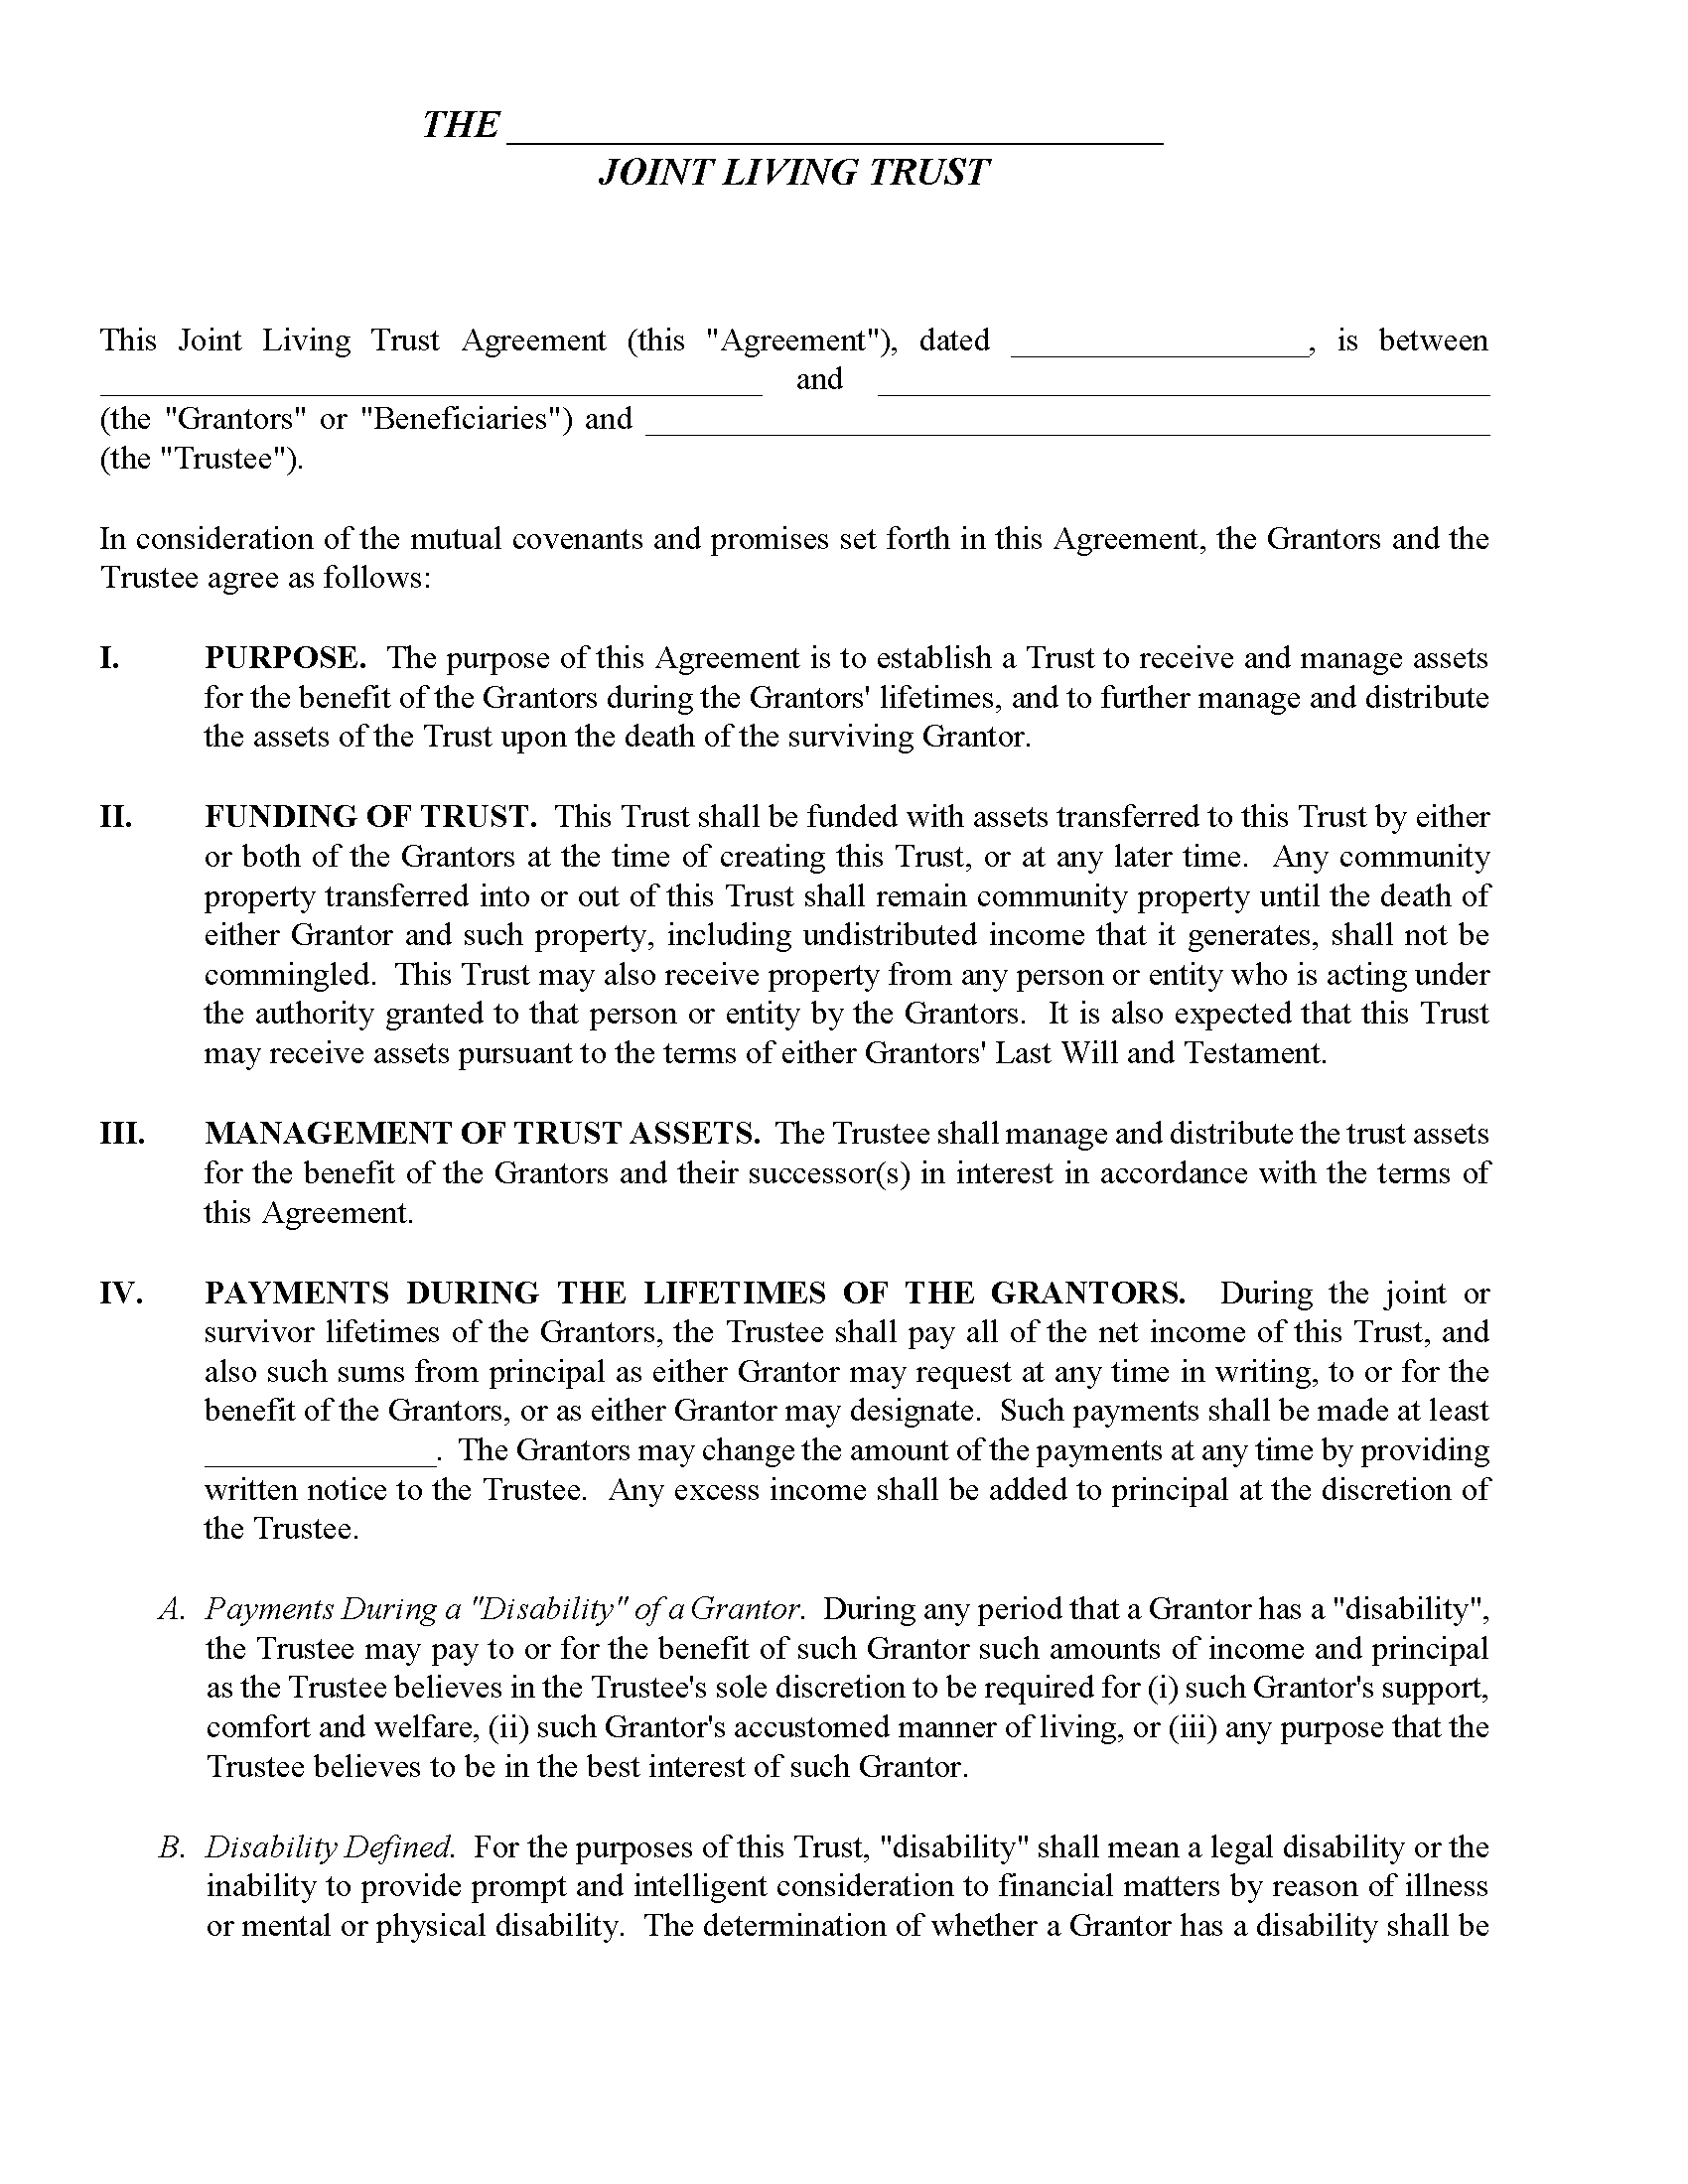 Tennessee Joint Living Trust Form